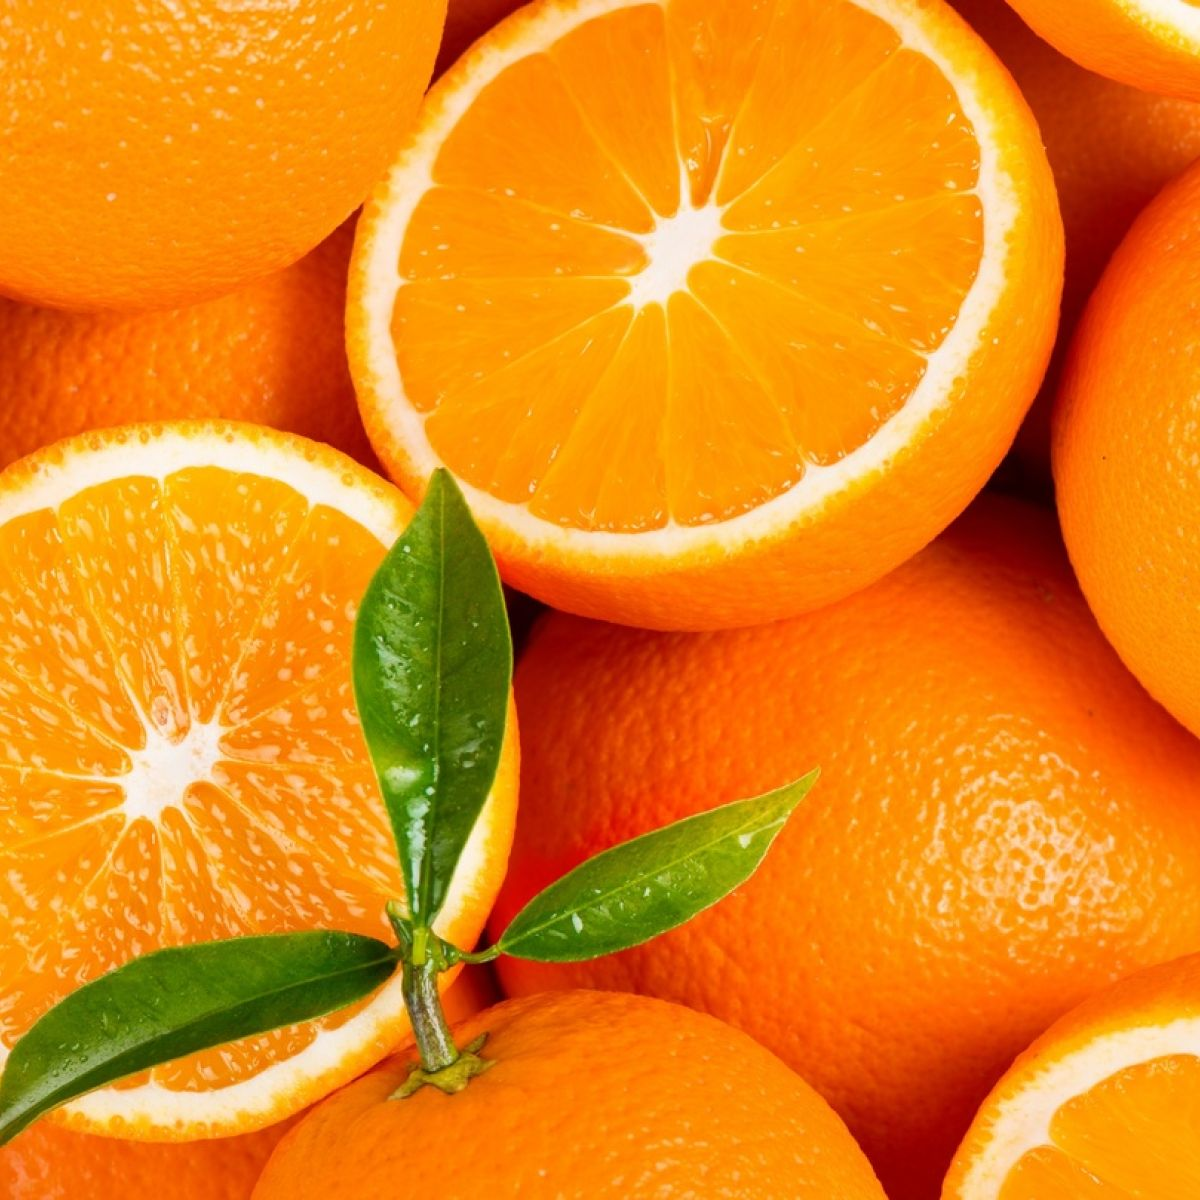 Oranges or apples: Why is one so much worse for the planet?